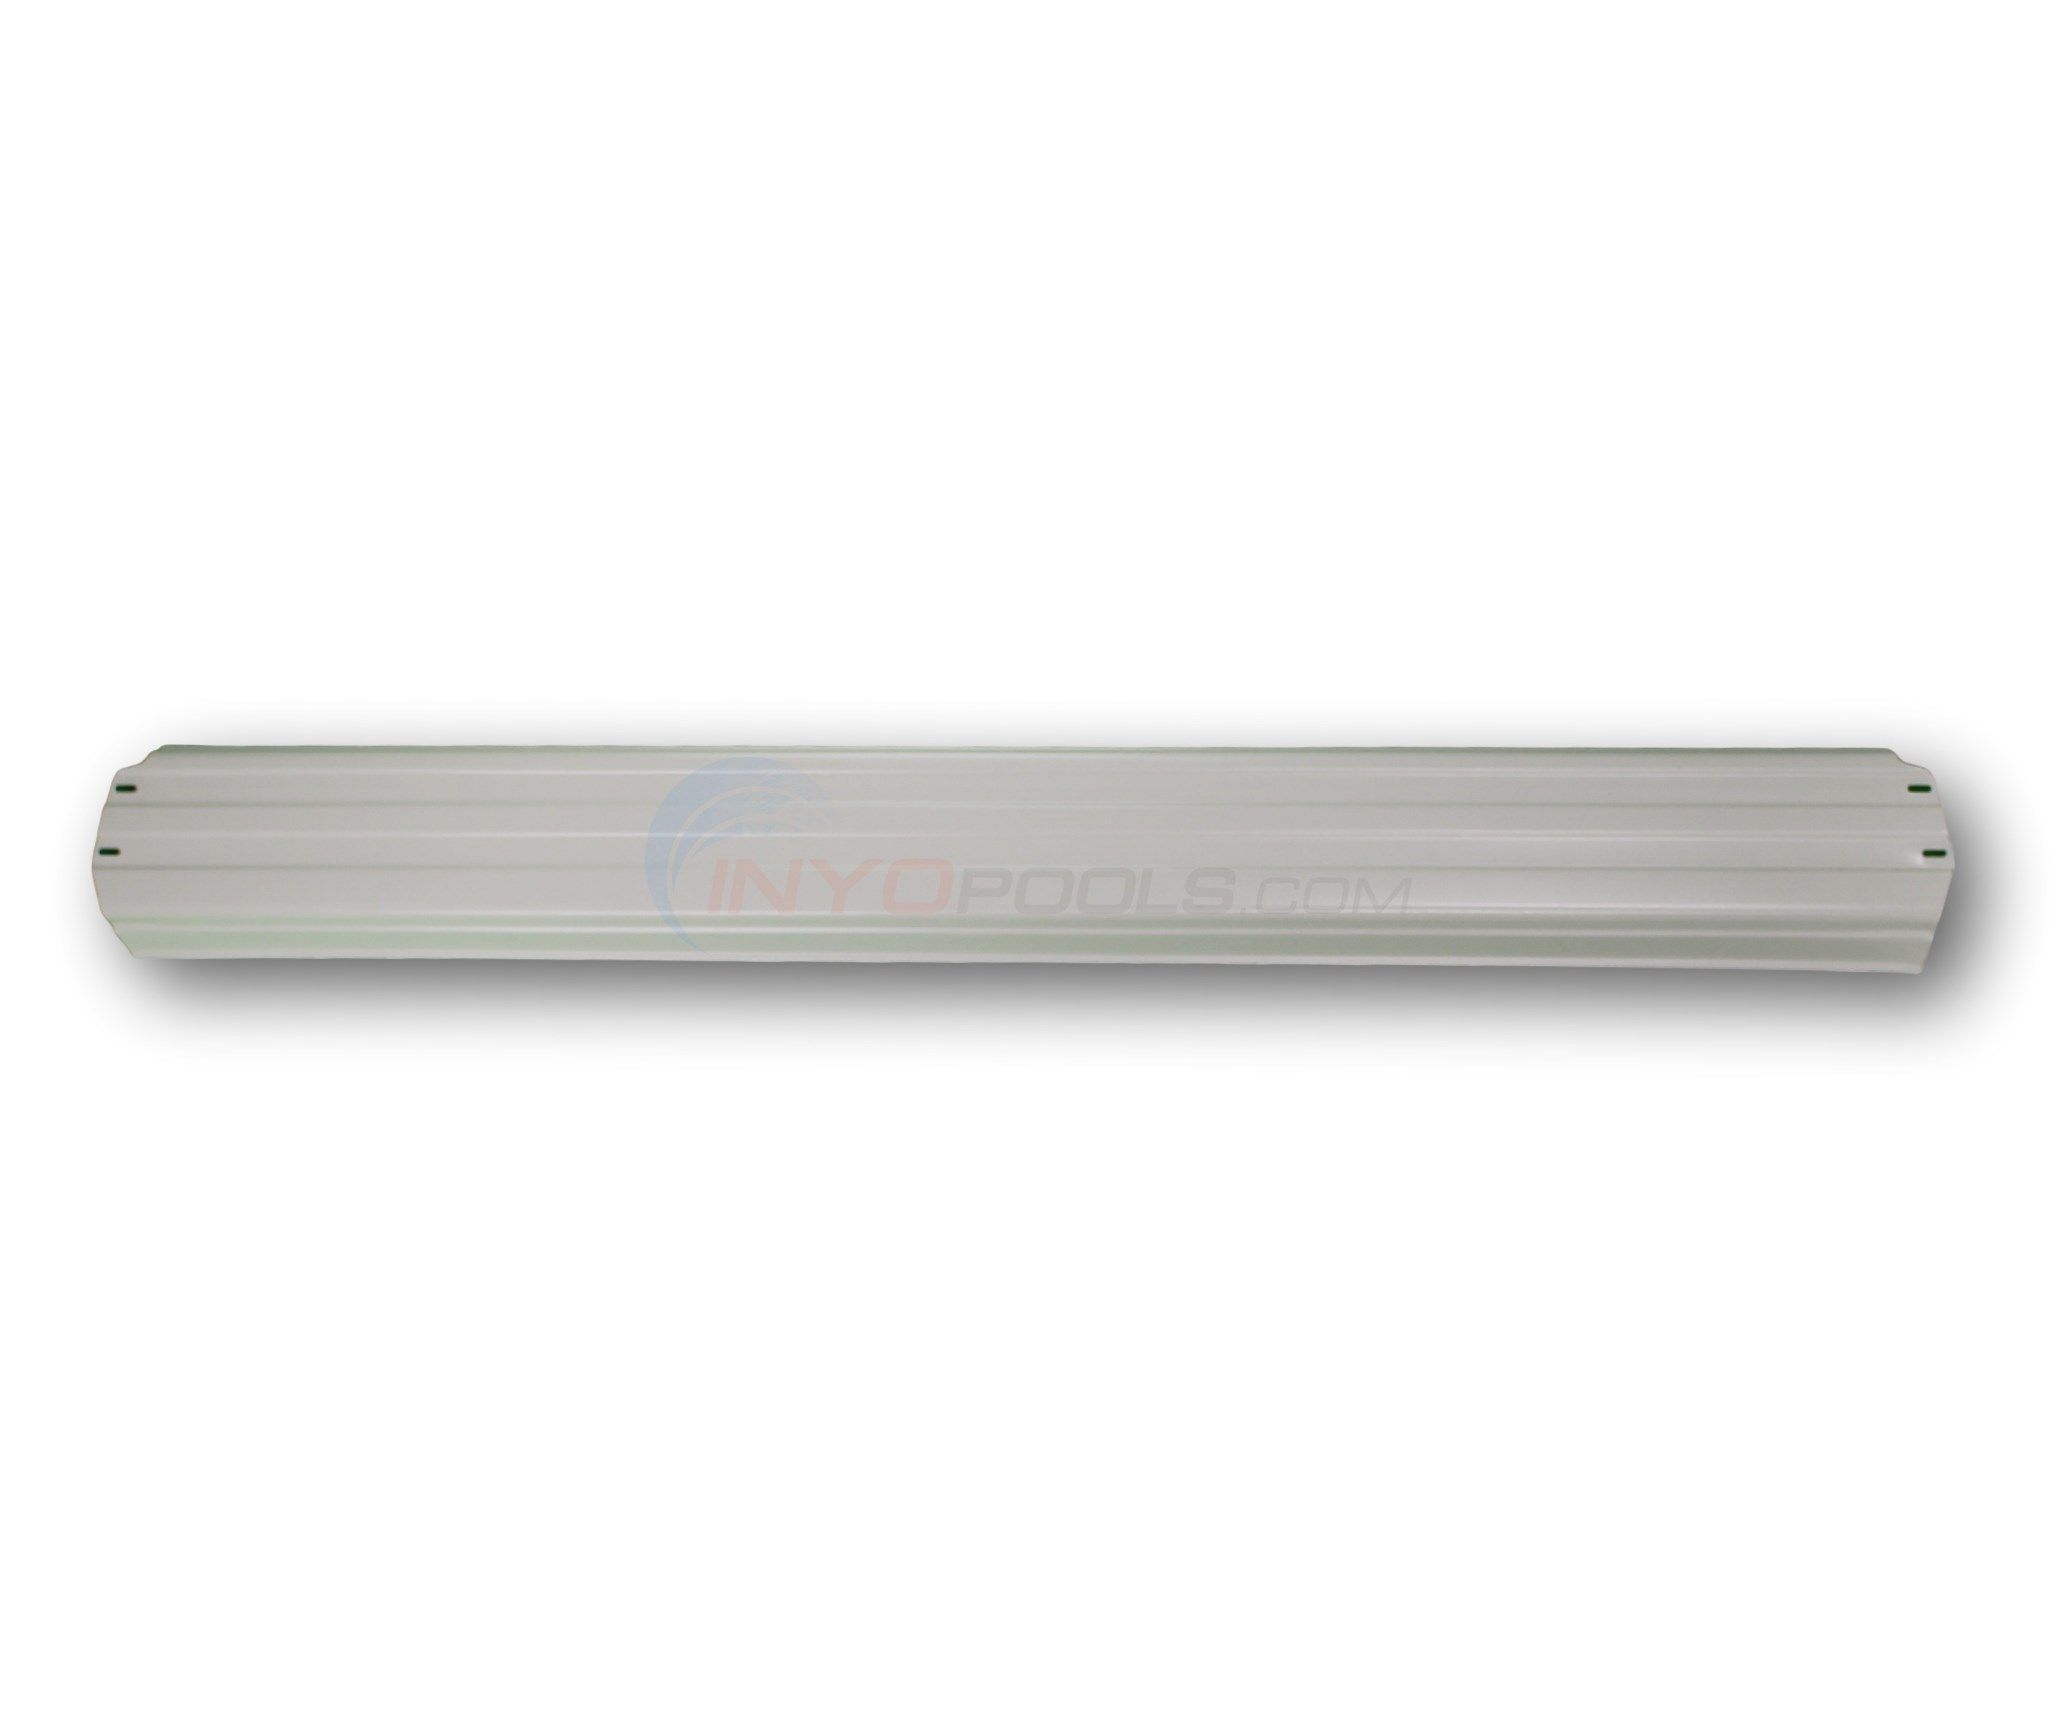 "Top Rail - 56-7/8"" (Single)"